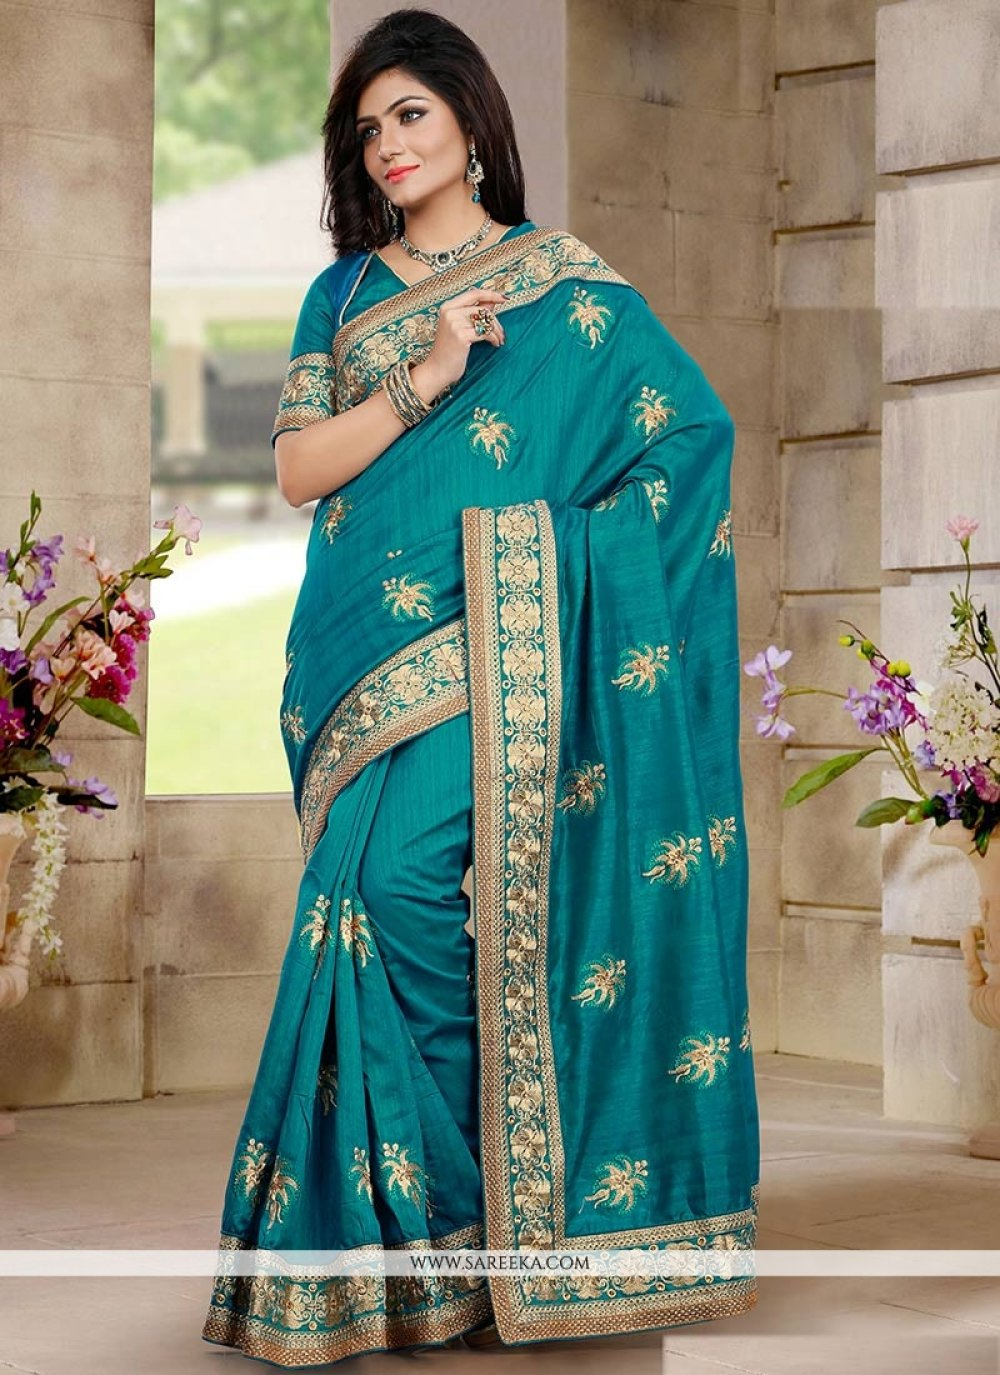 Asthetic Teal Green Bhagalpuri Silk Saree